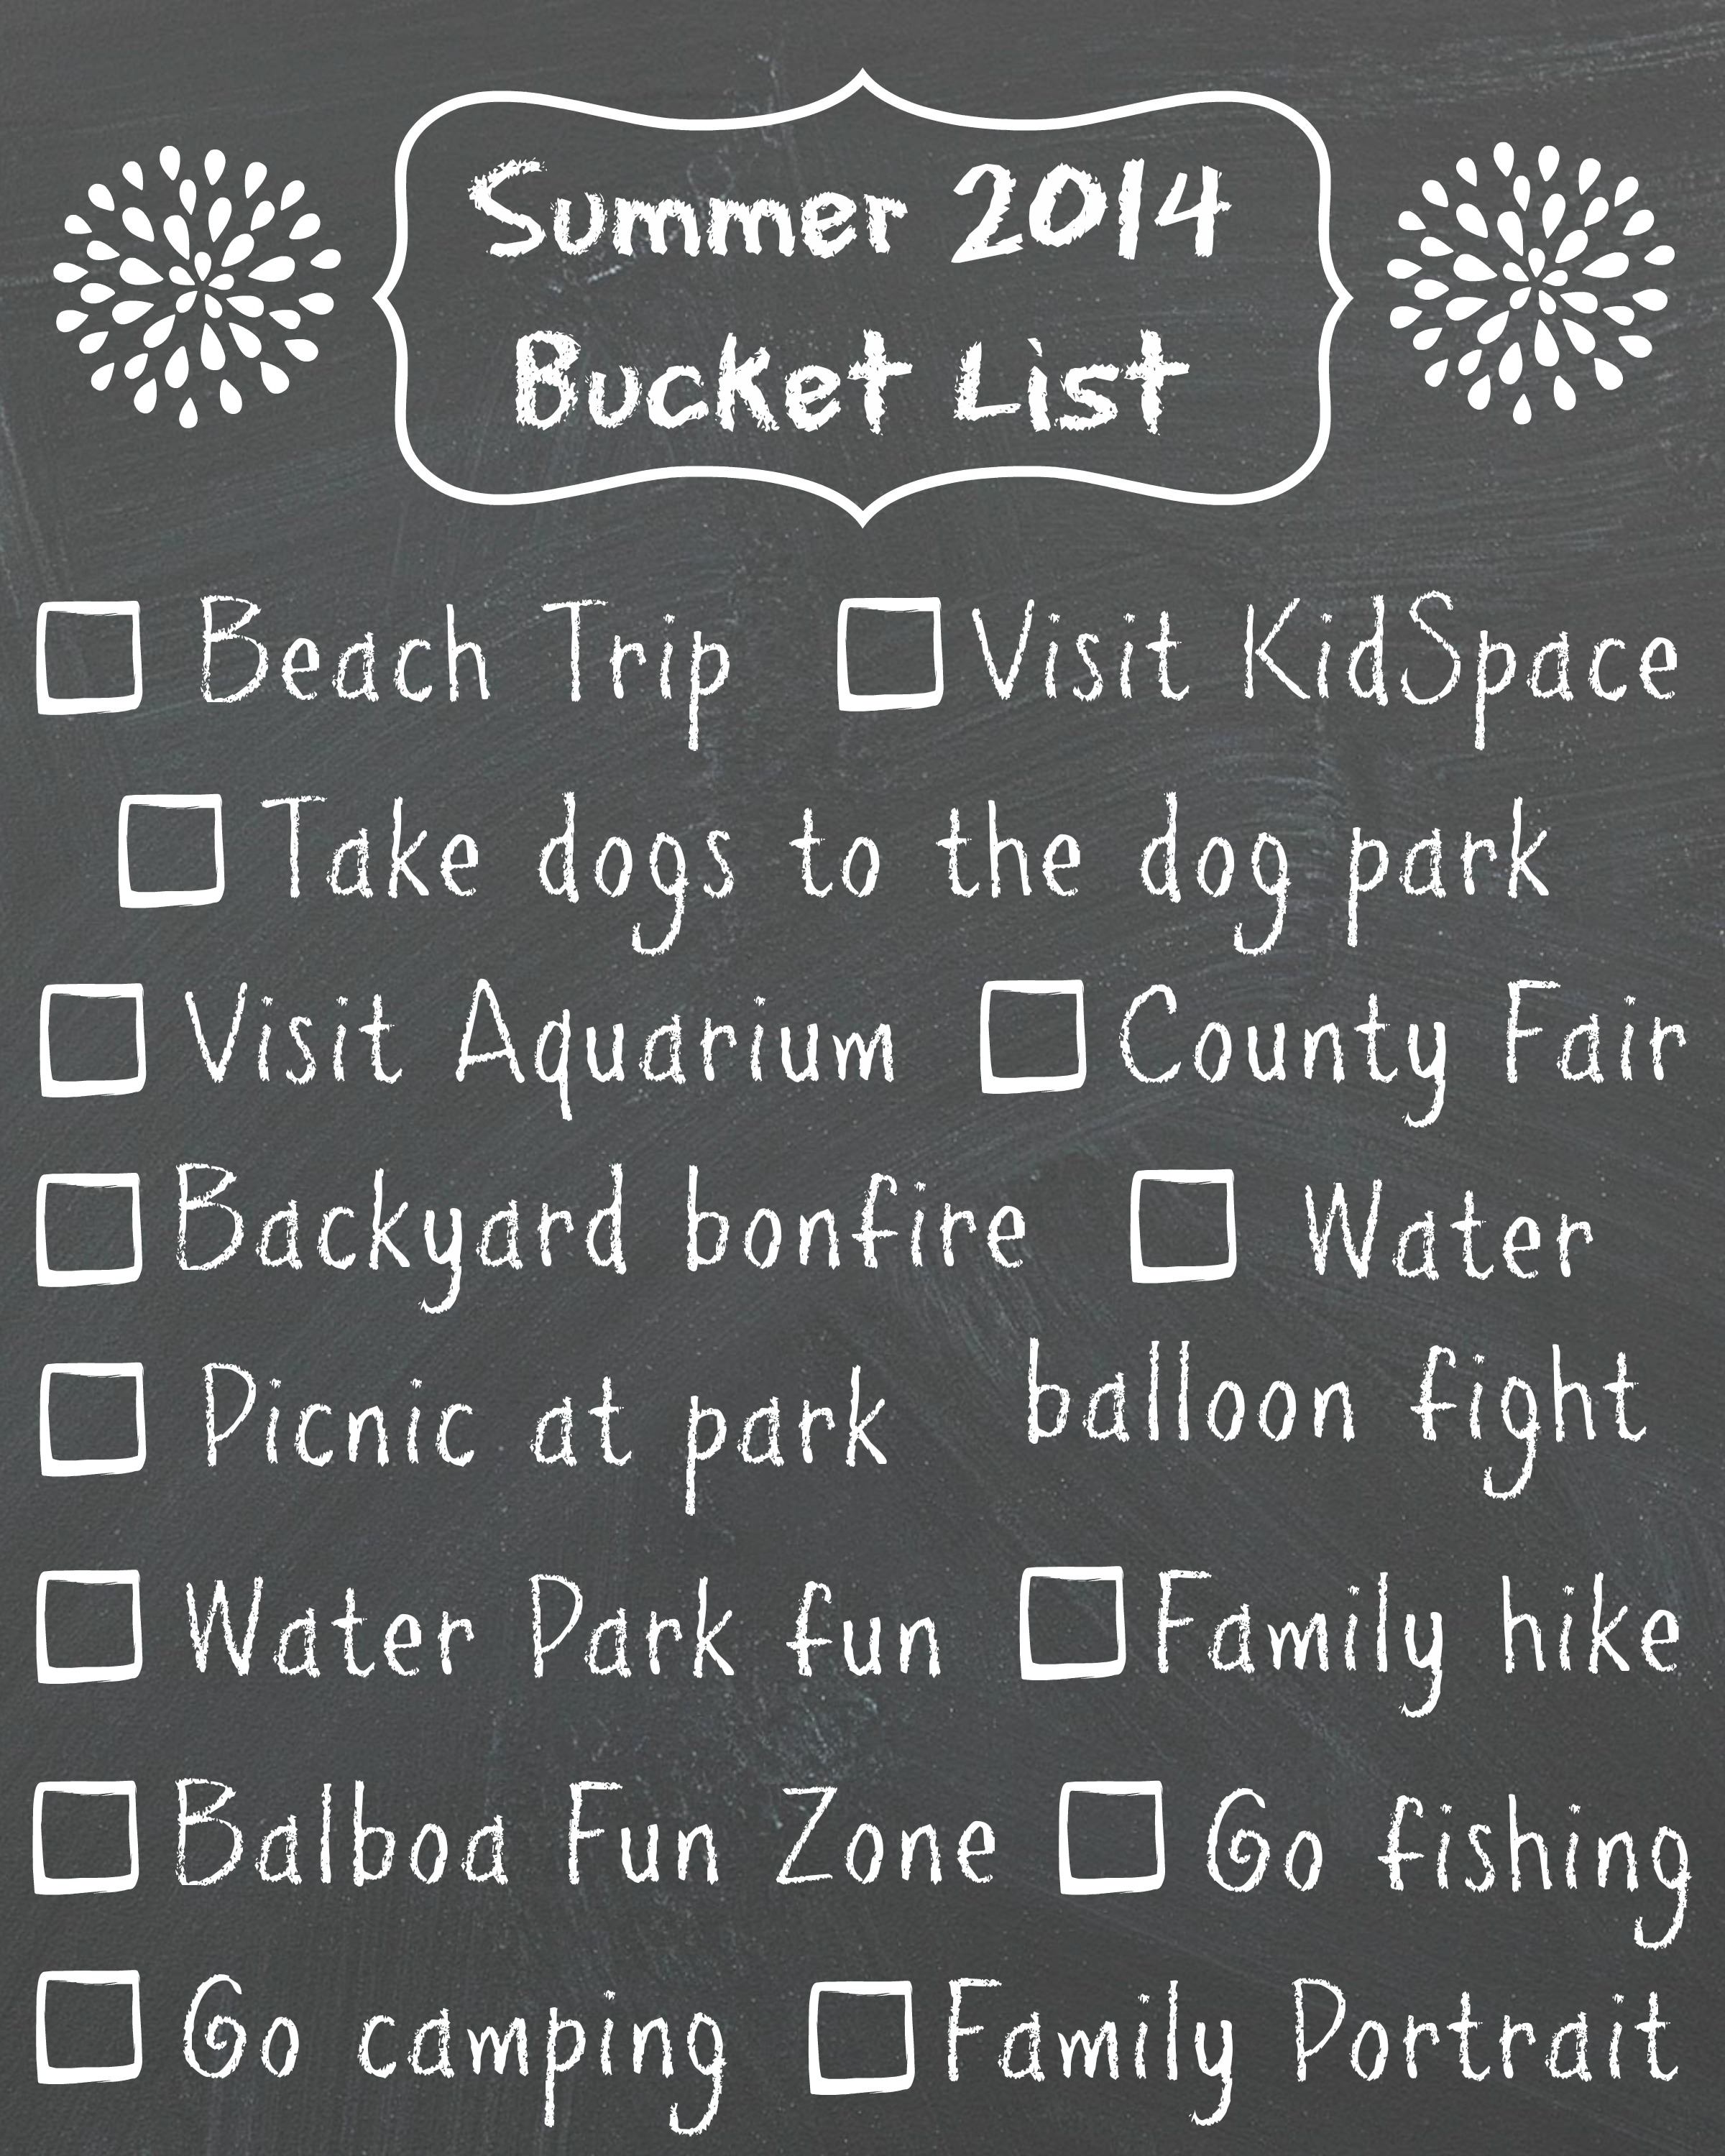 graphic about Bucket List Tumblr named 2014 summer time bucket record - Momistabeginnings